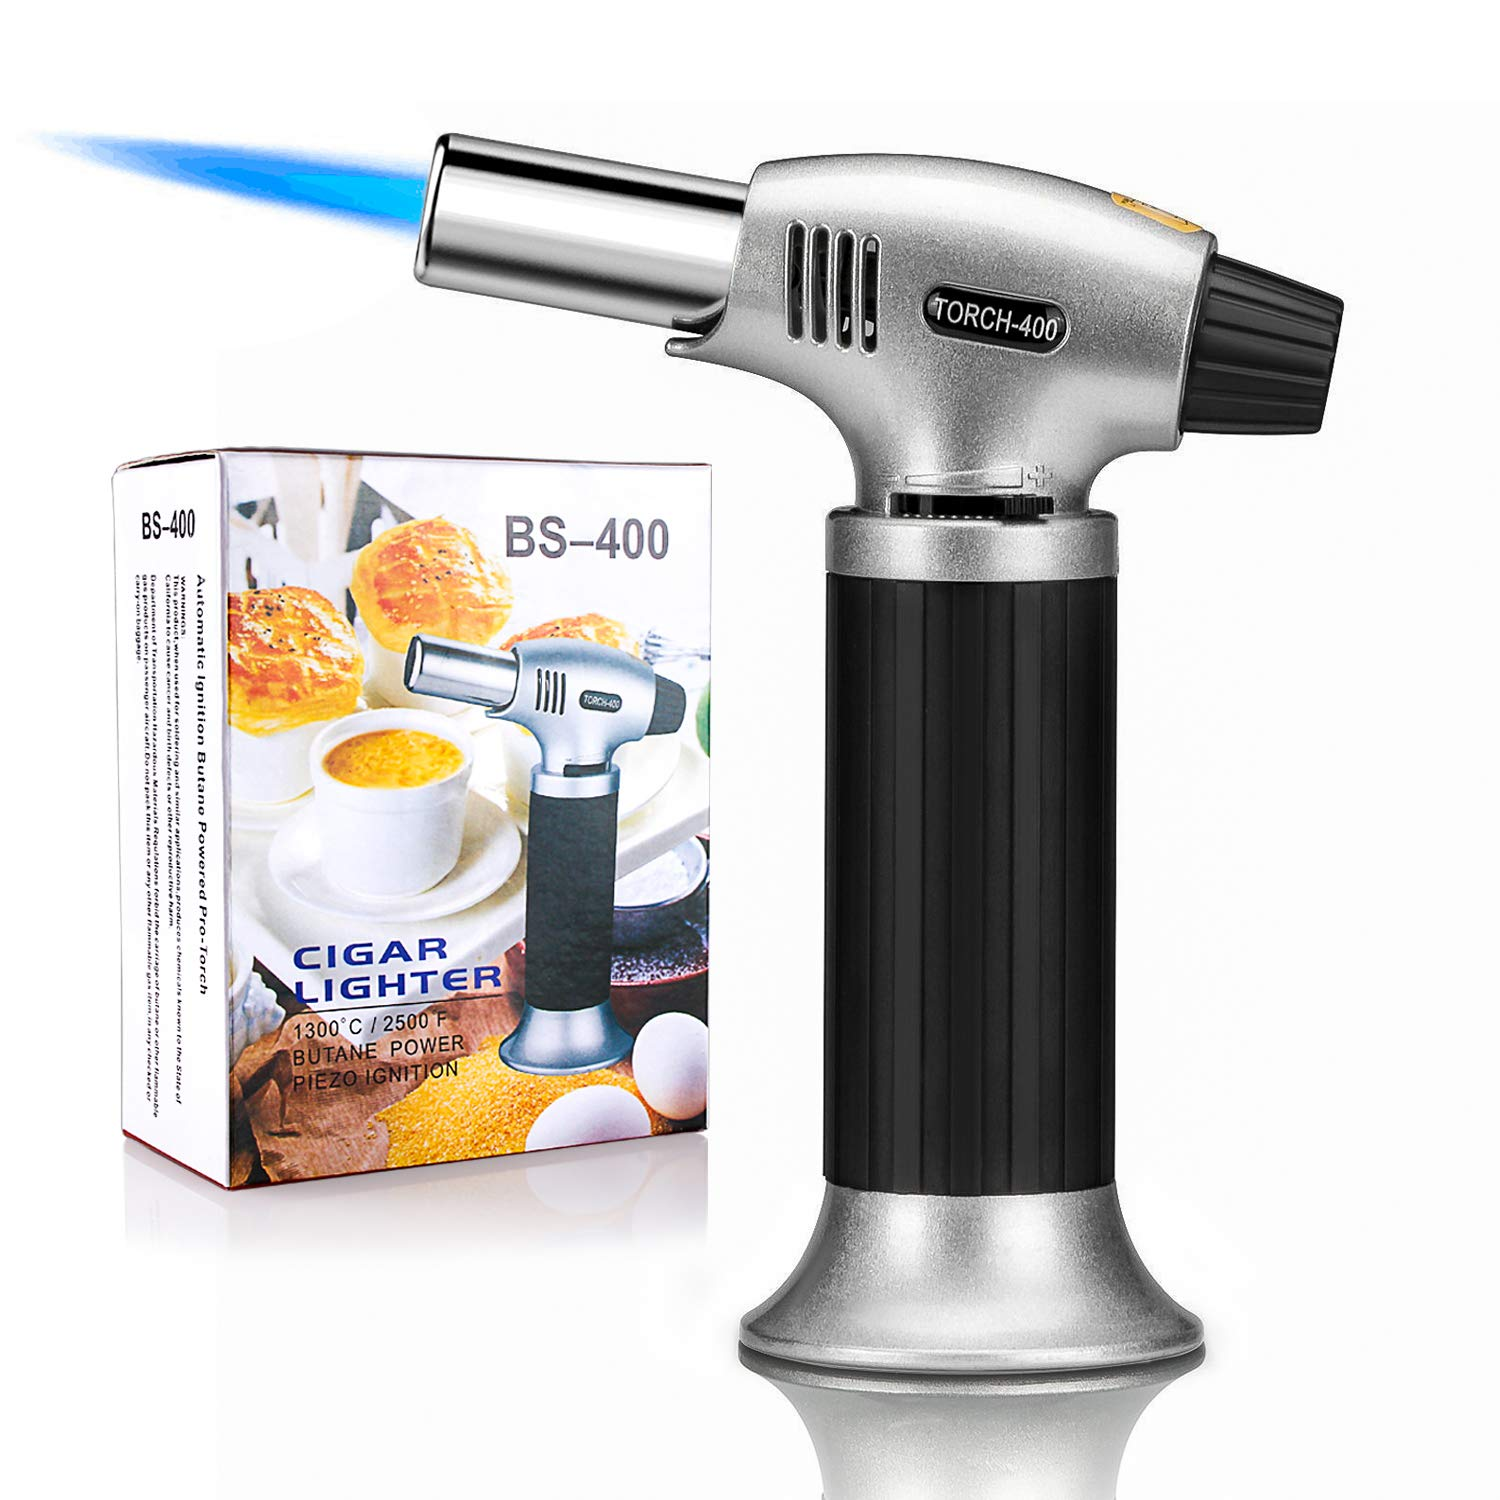 Black Culinary Blow Torch Chef Cooking Torch Lighter Refillable Cooking Butane Torch with Safety Lock and Adjustable Flame for DIY Creme Brulee Pastries Desserts Brazing Soldering Camping Barbecue